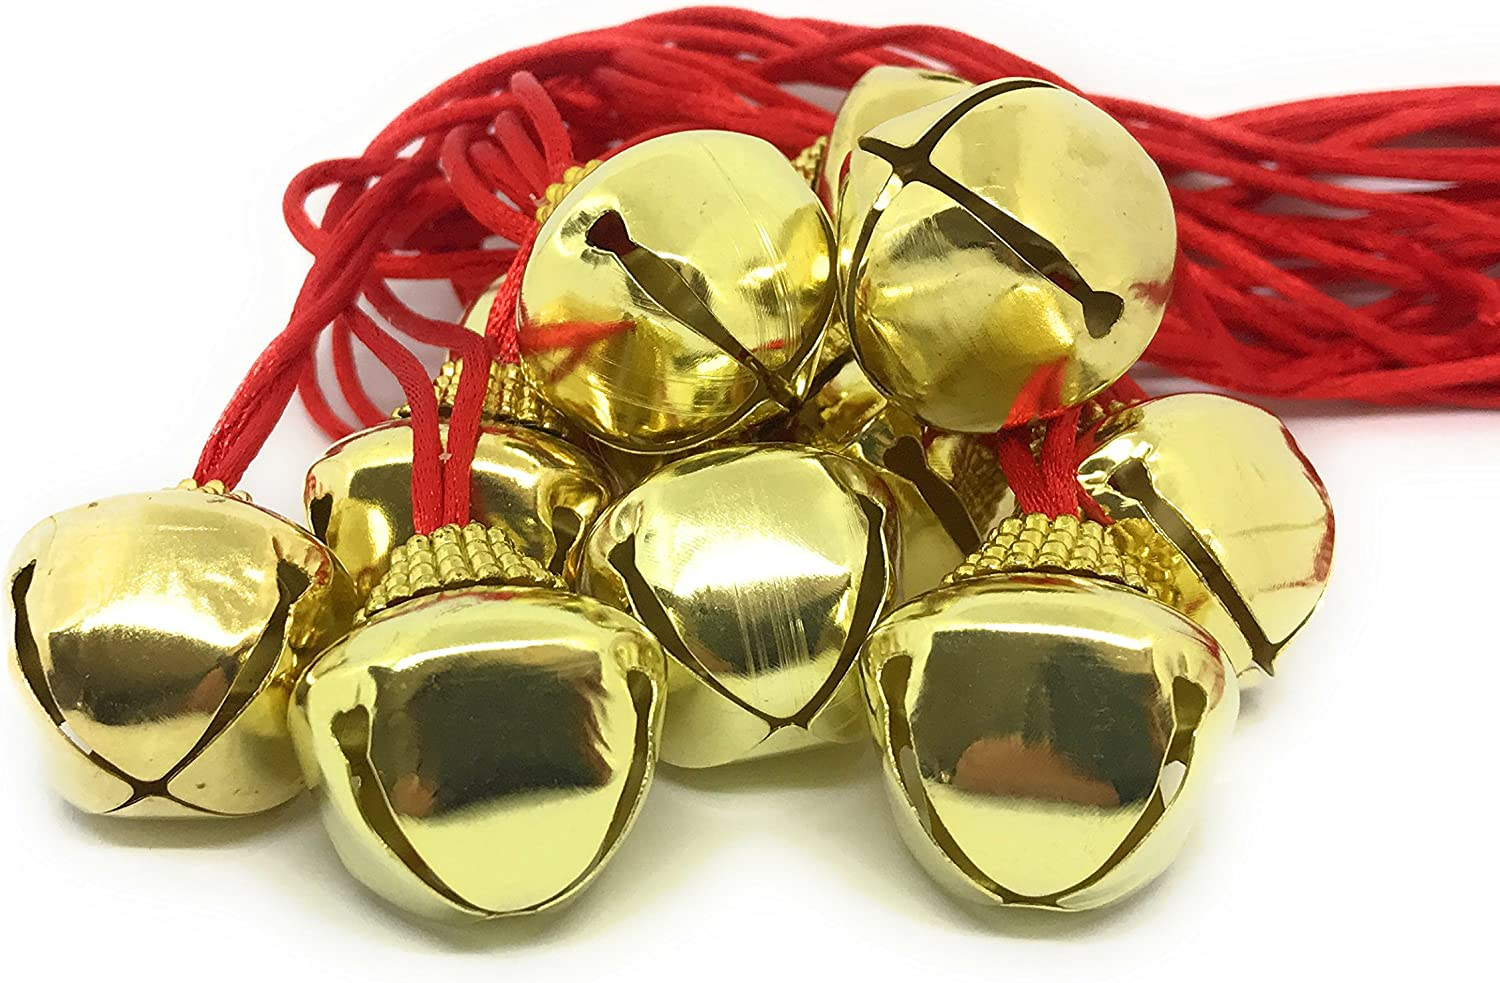 48 Bulk Courier shipping free shipping Deluxe Christmas Jingle Necklace Children's Max 46% OFF with Sa Bell